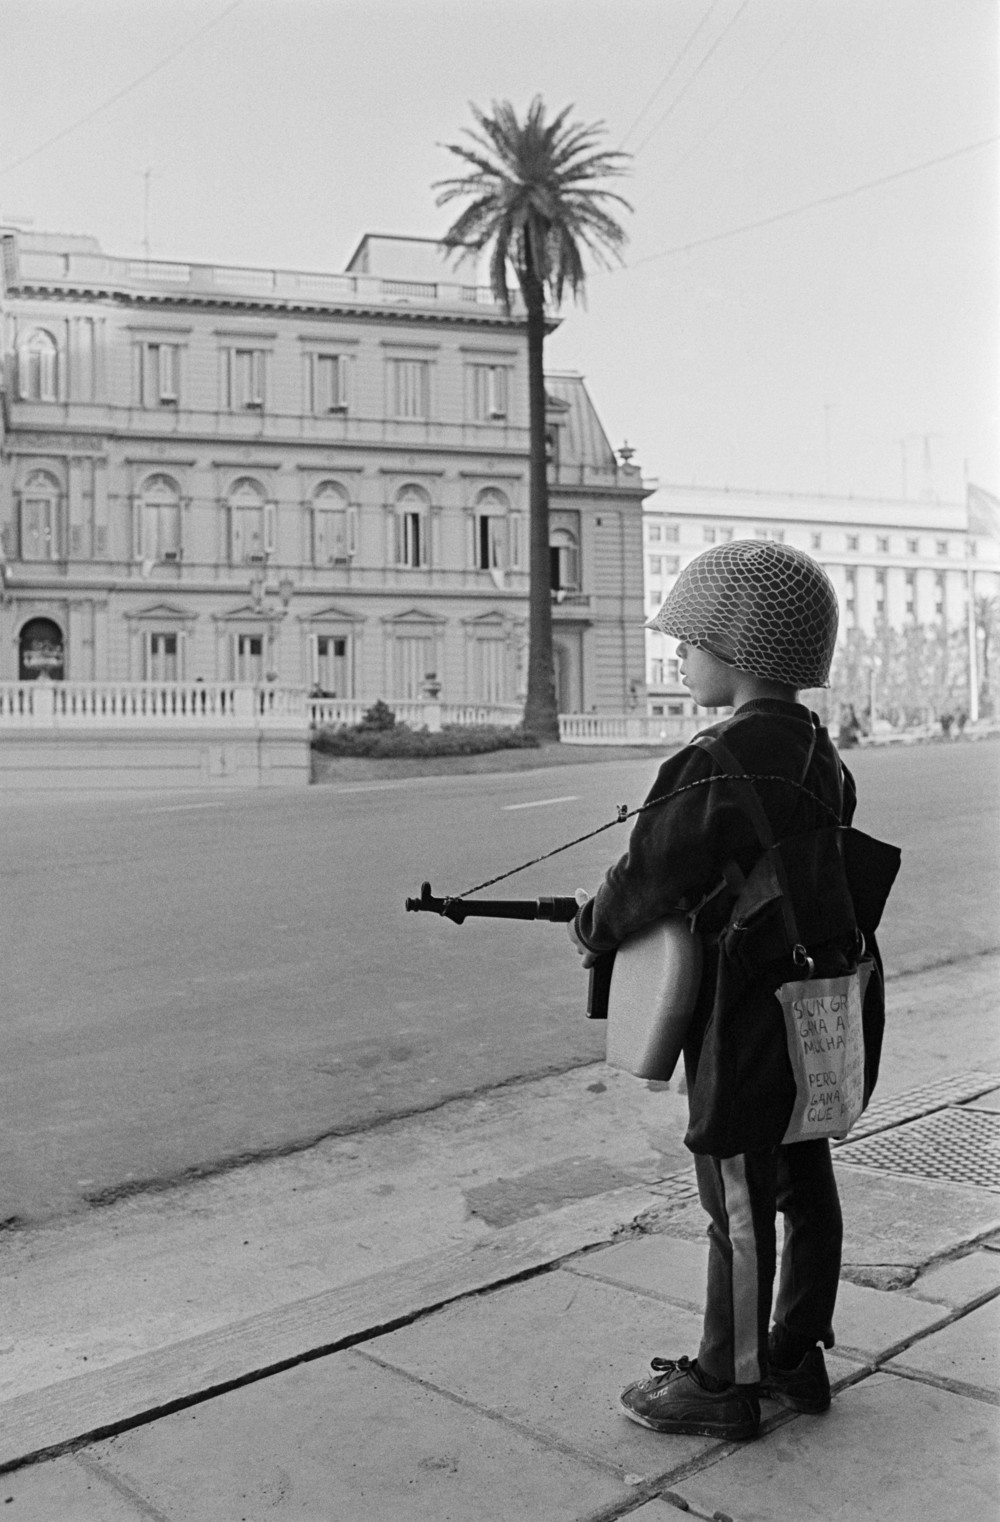 Waiting for General Haig during the Malvinas war, Buenos Aires, 1982.